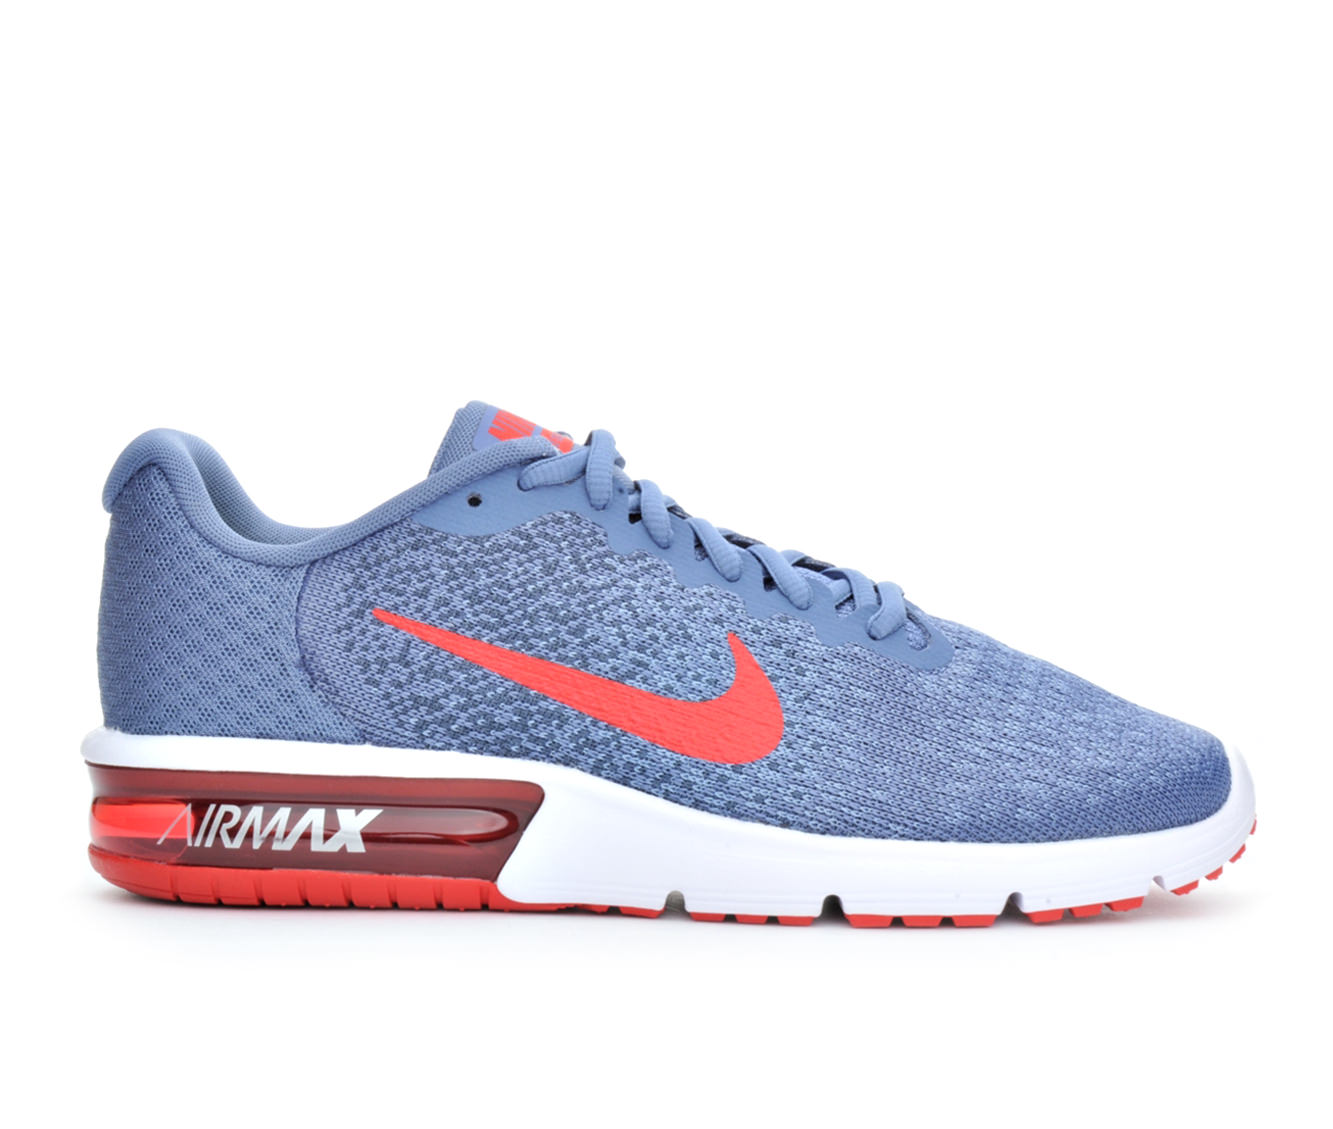 Men's Nike Air Max Sequent 2 Running Shoes (Blue - Size 10.5) 1649021